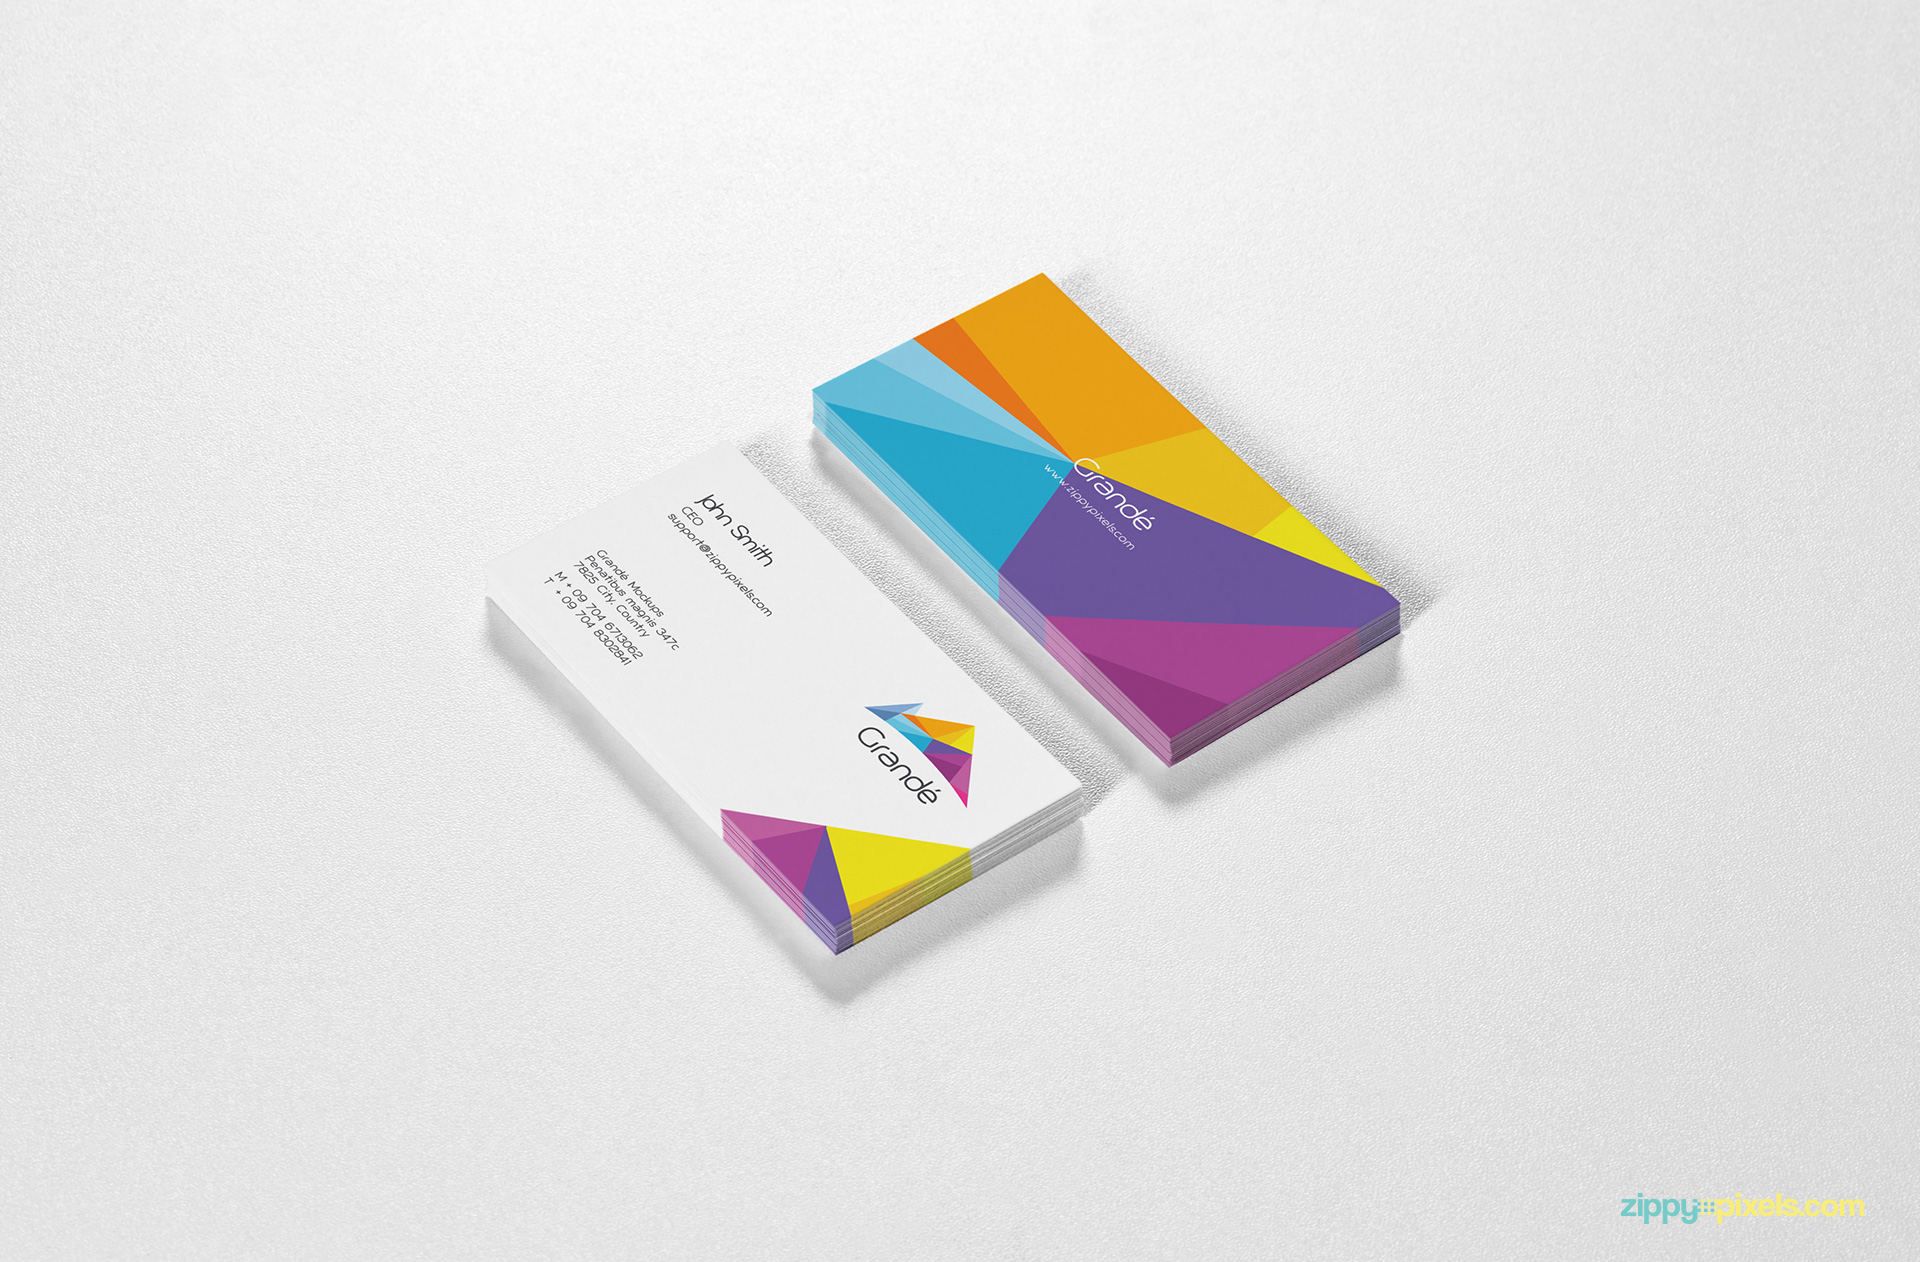 Branding Mockup of Two Business Cards